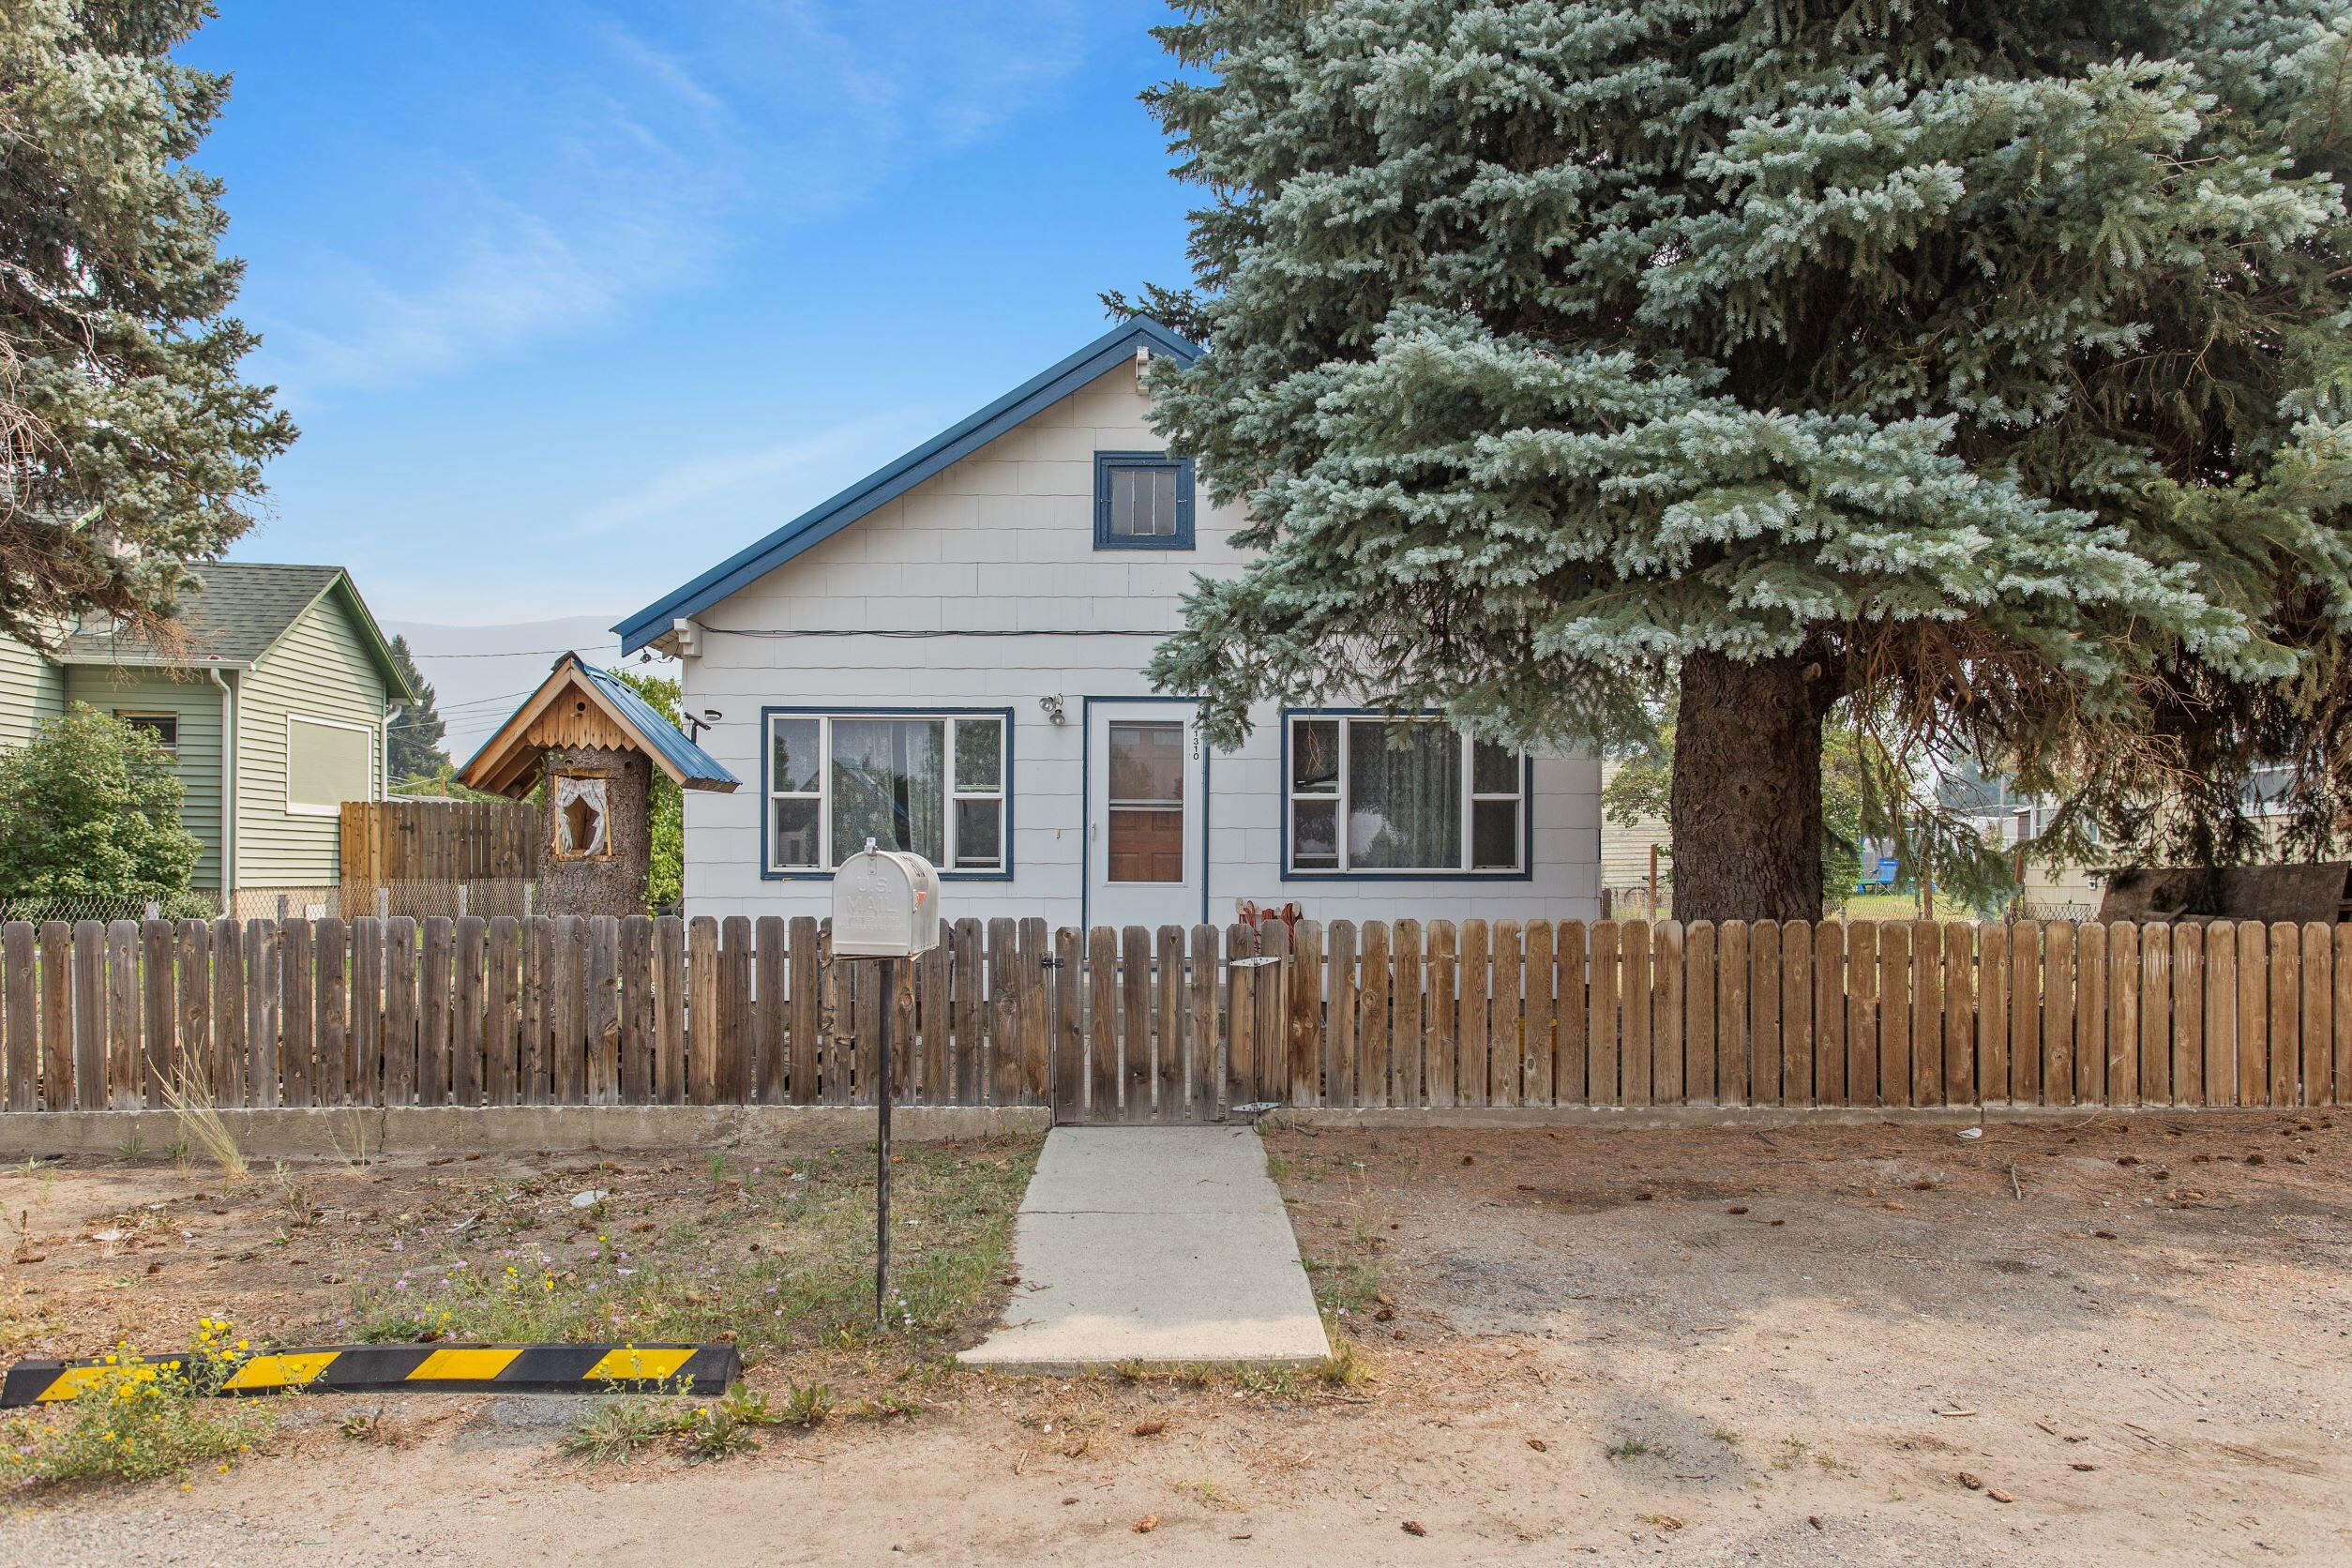 This 3 Bedroom 1 Bath home would make a great starter home or investment property.Sellers are wishing to sell property ''as-is''